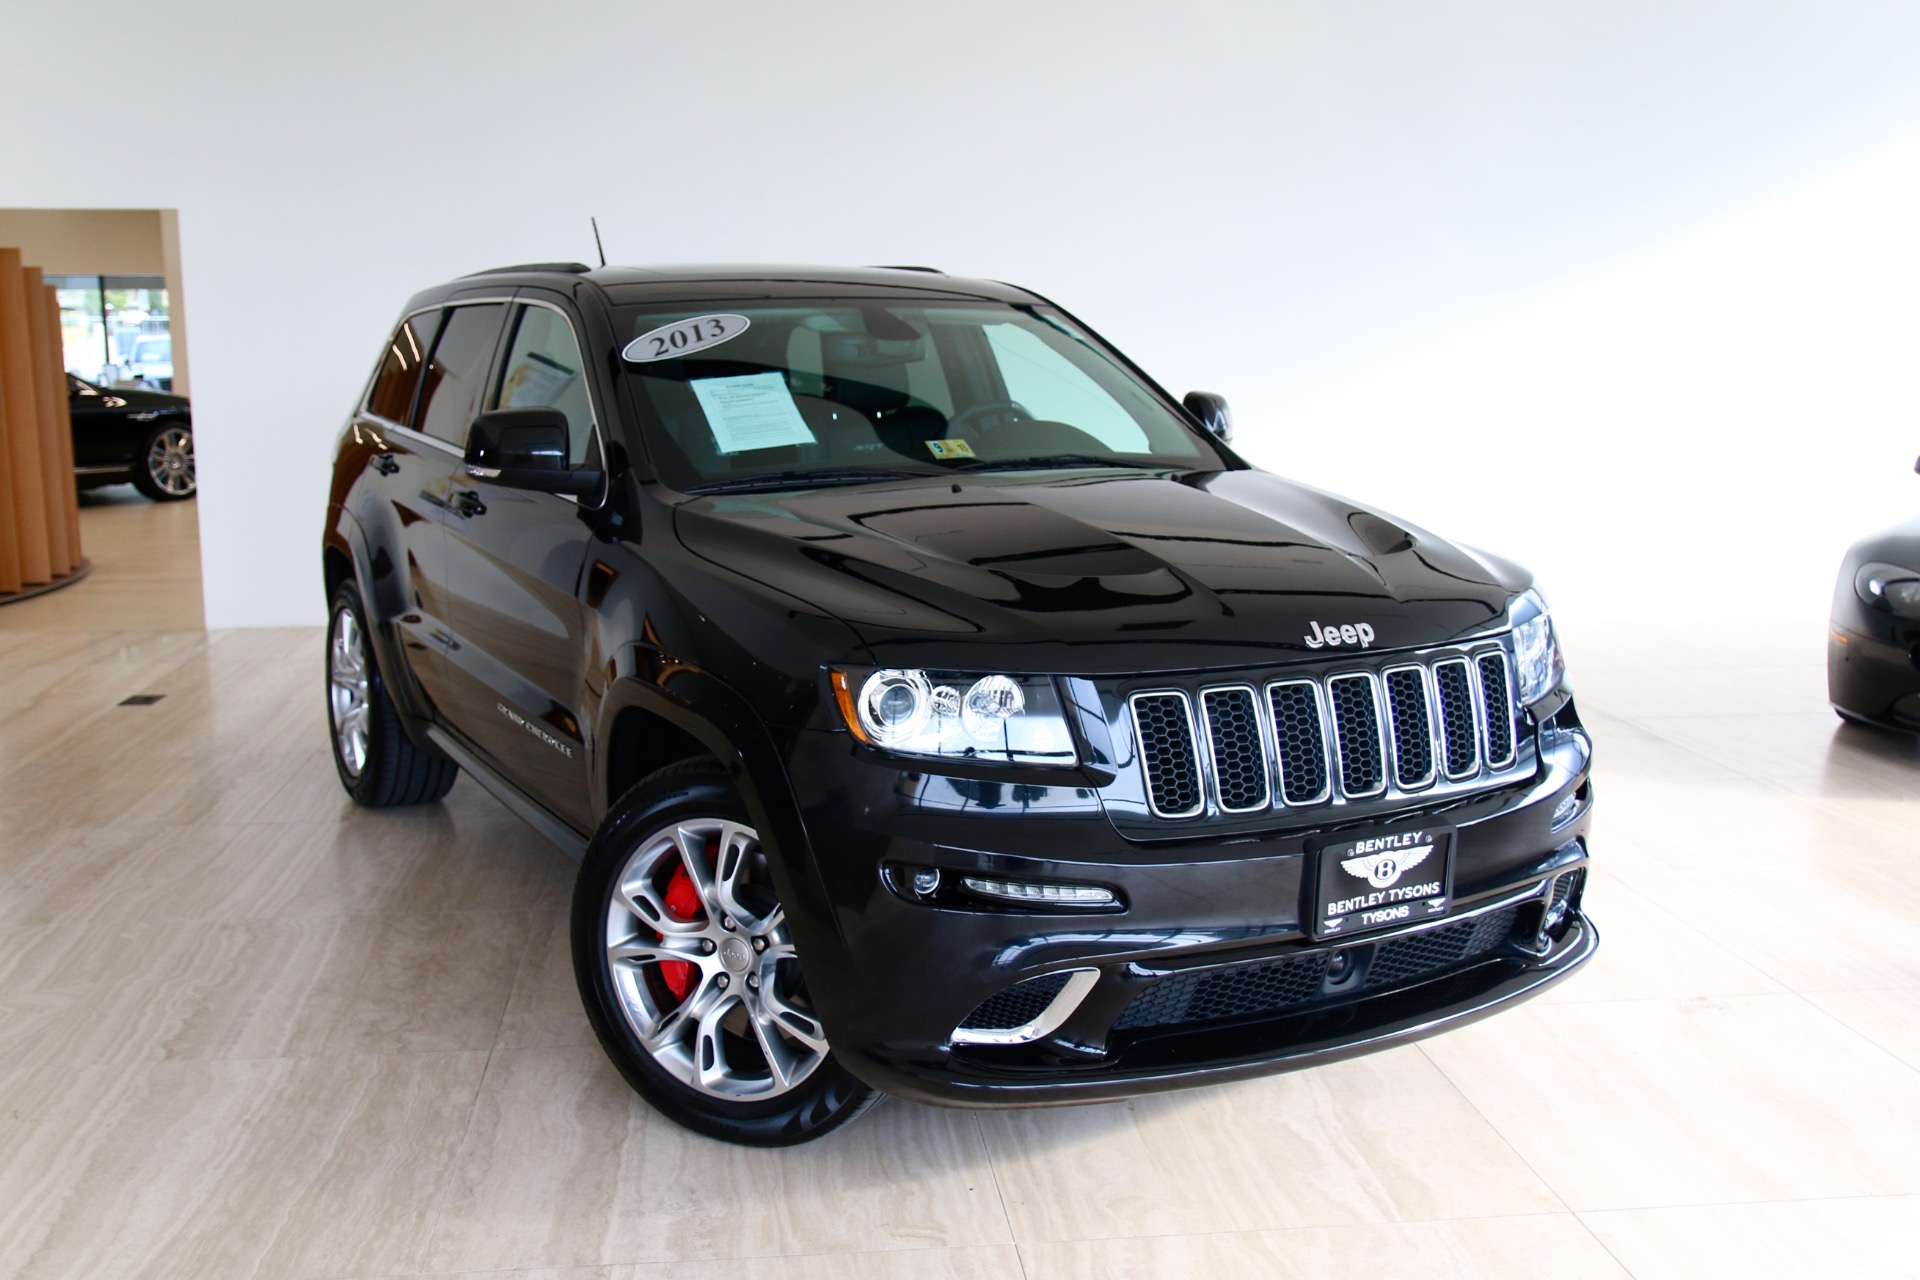 2013 jeep grand cherokee srt8 stock 7nc061977a for sale near vienna va va jeep dealer for. Black Bedroom Furniture Sets. Home Design Ideas